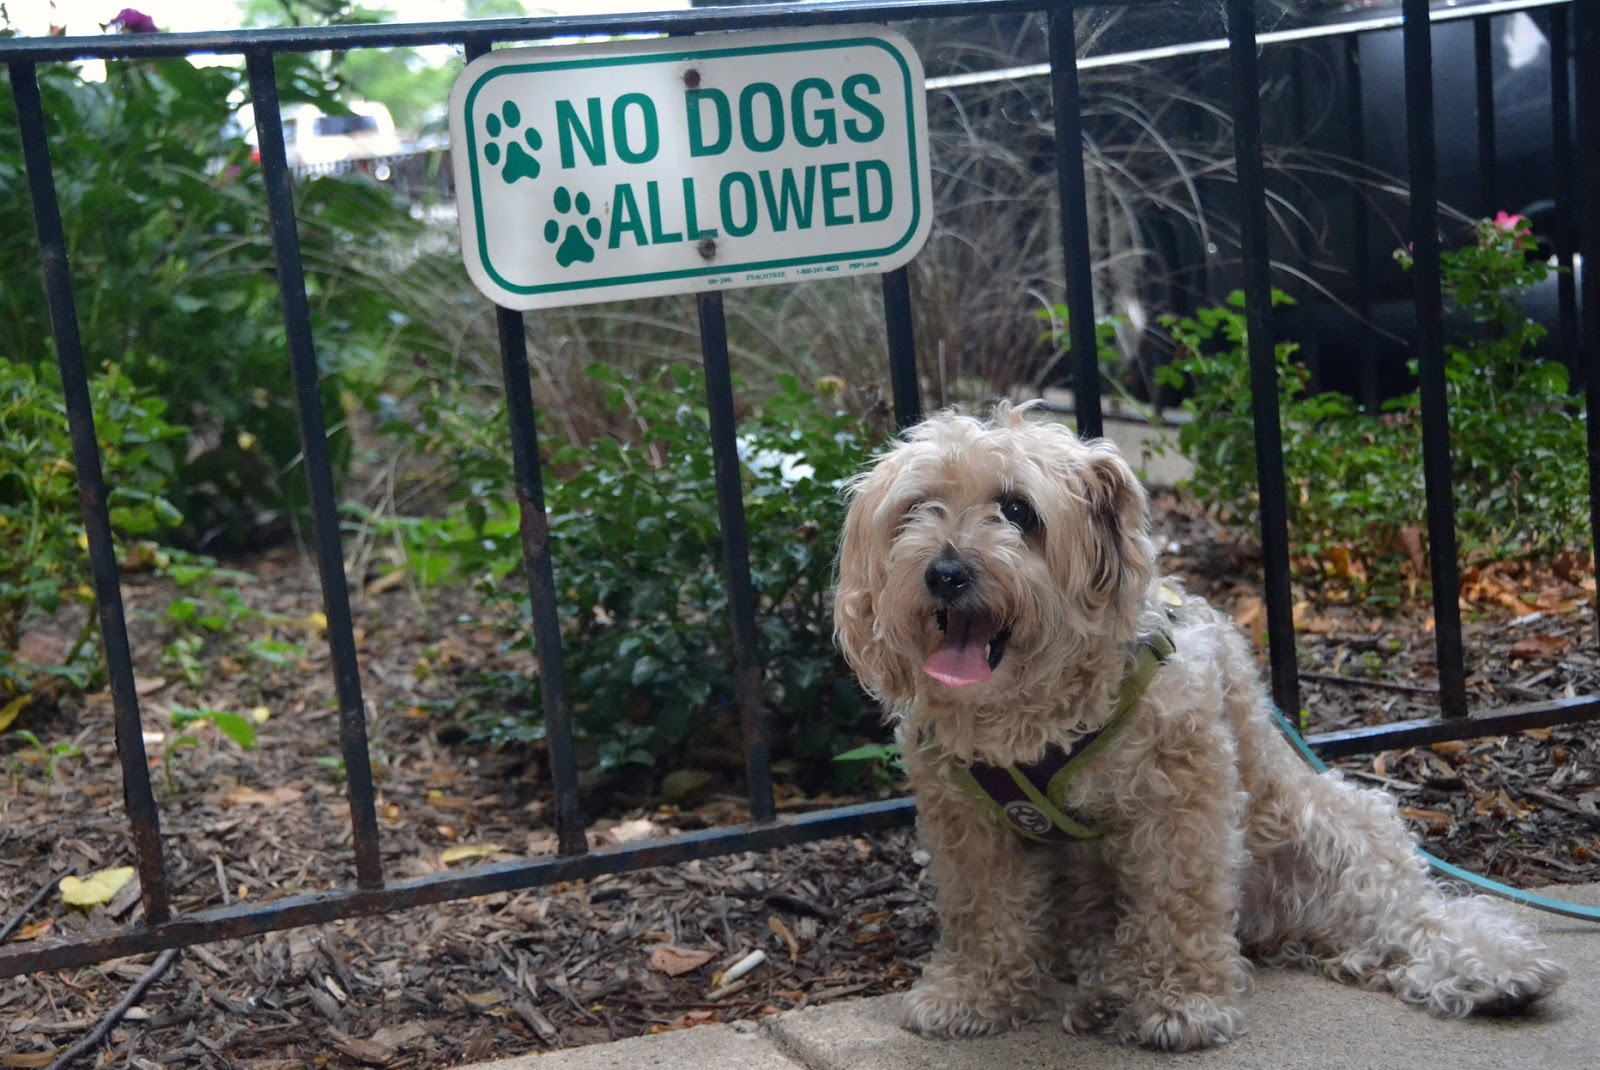 Rescued Yorkie-Poo fights against no dogs allowed signs